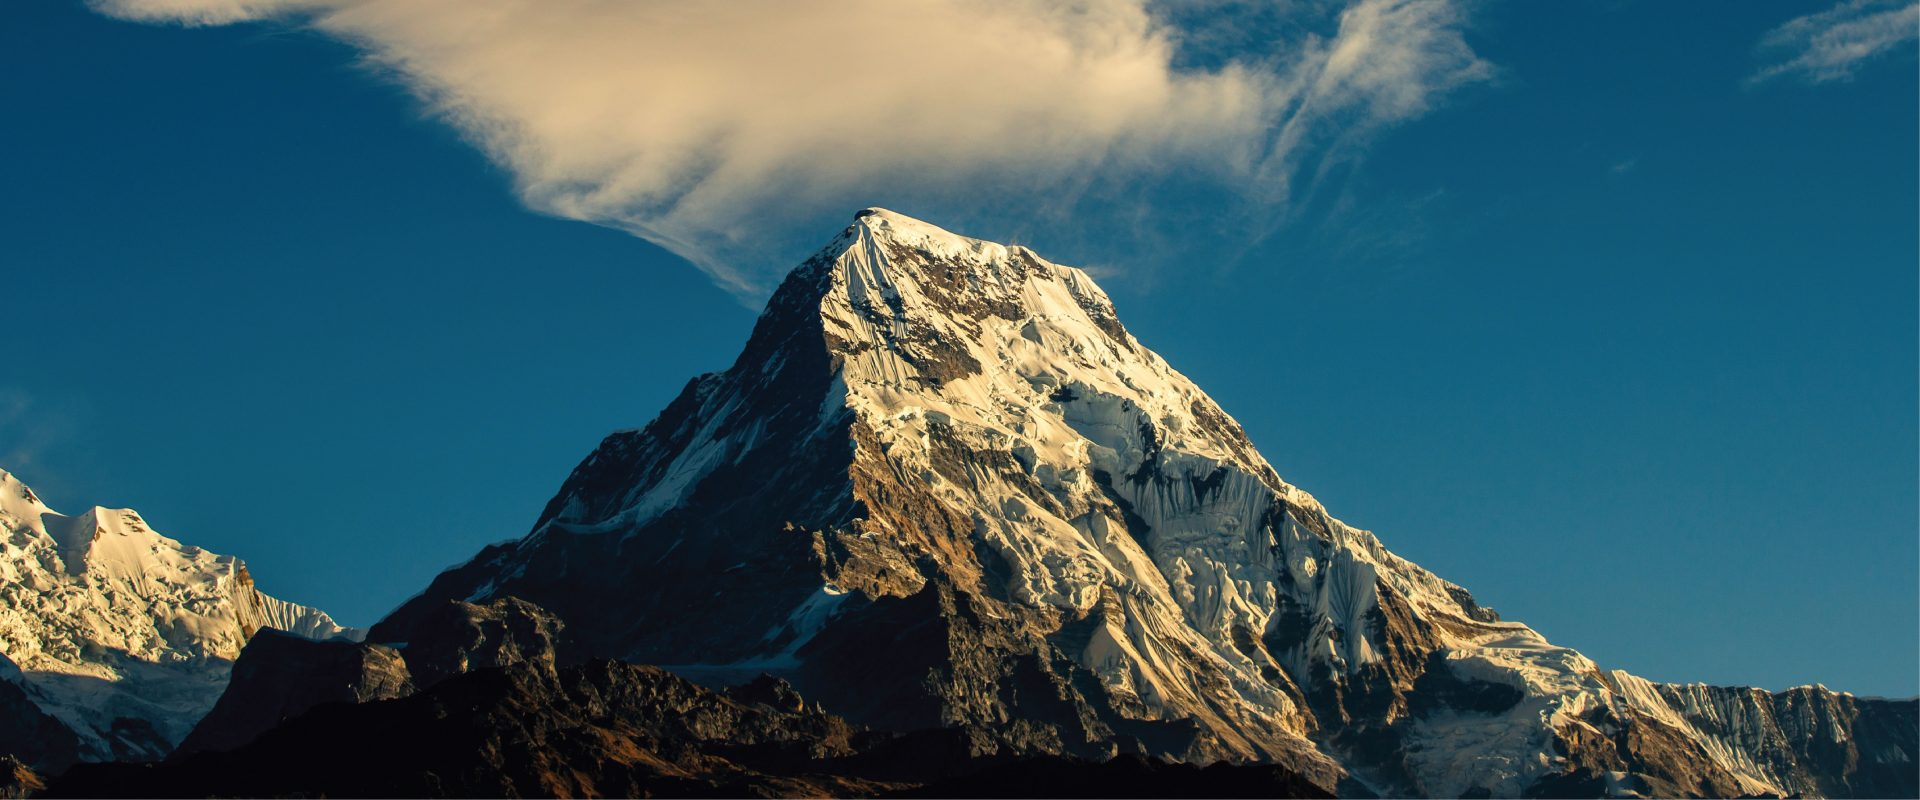 Trekking, Tours and Adventures in Nepal!